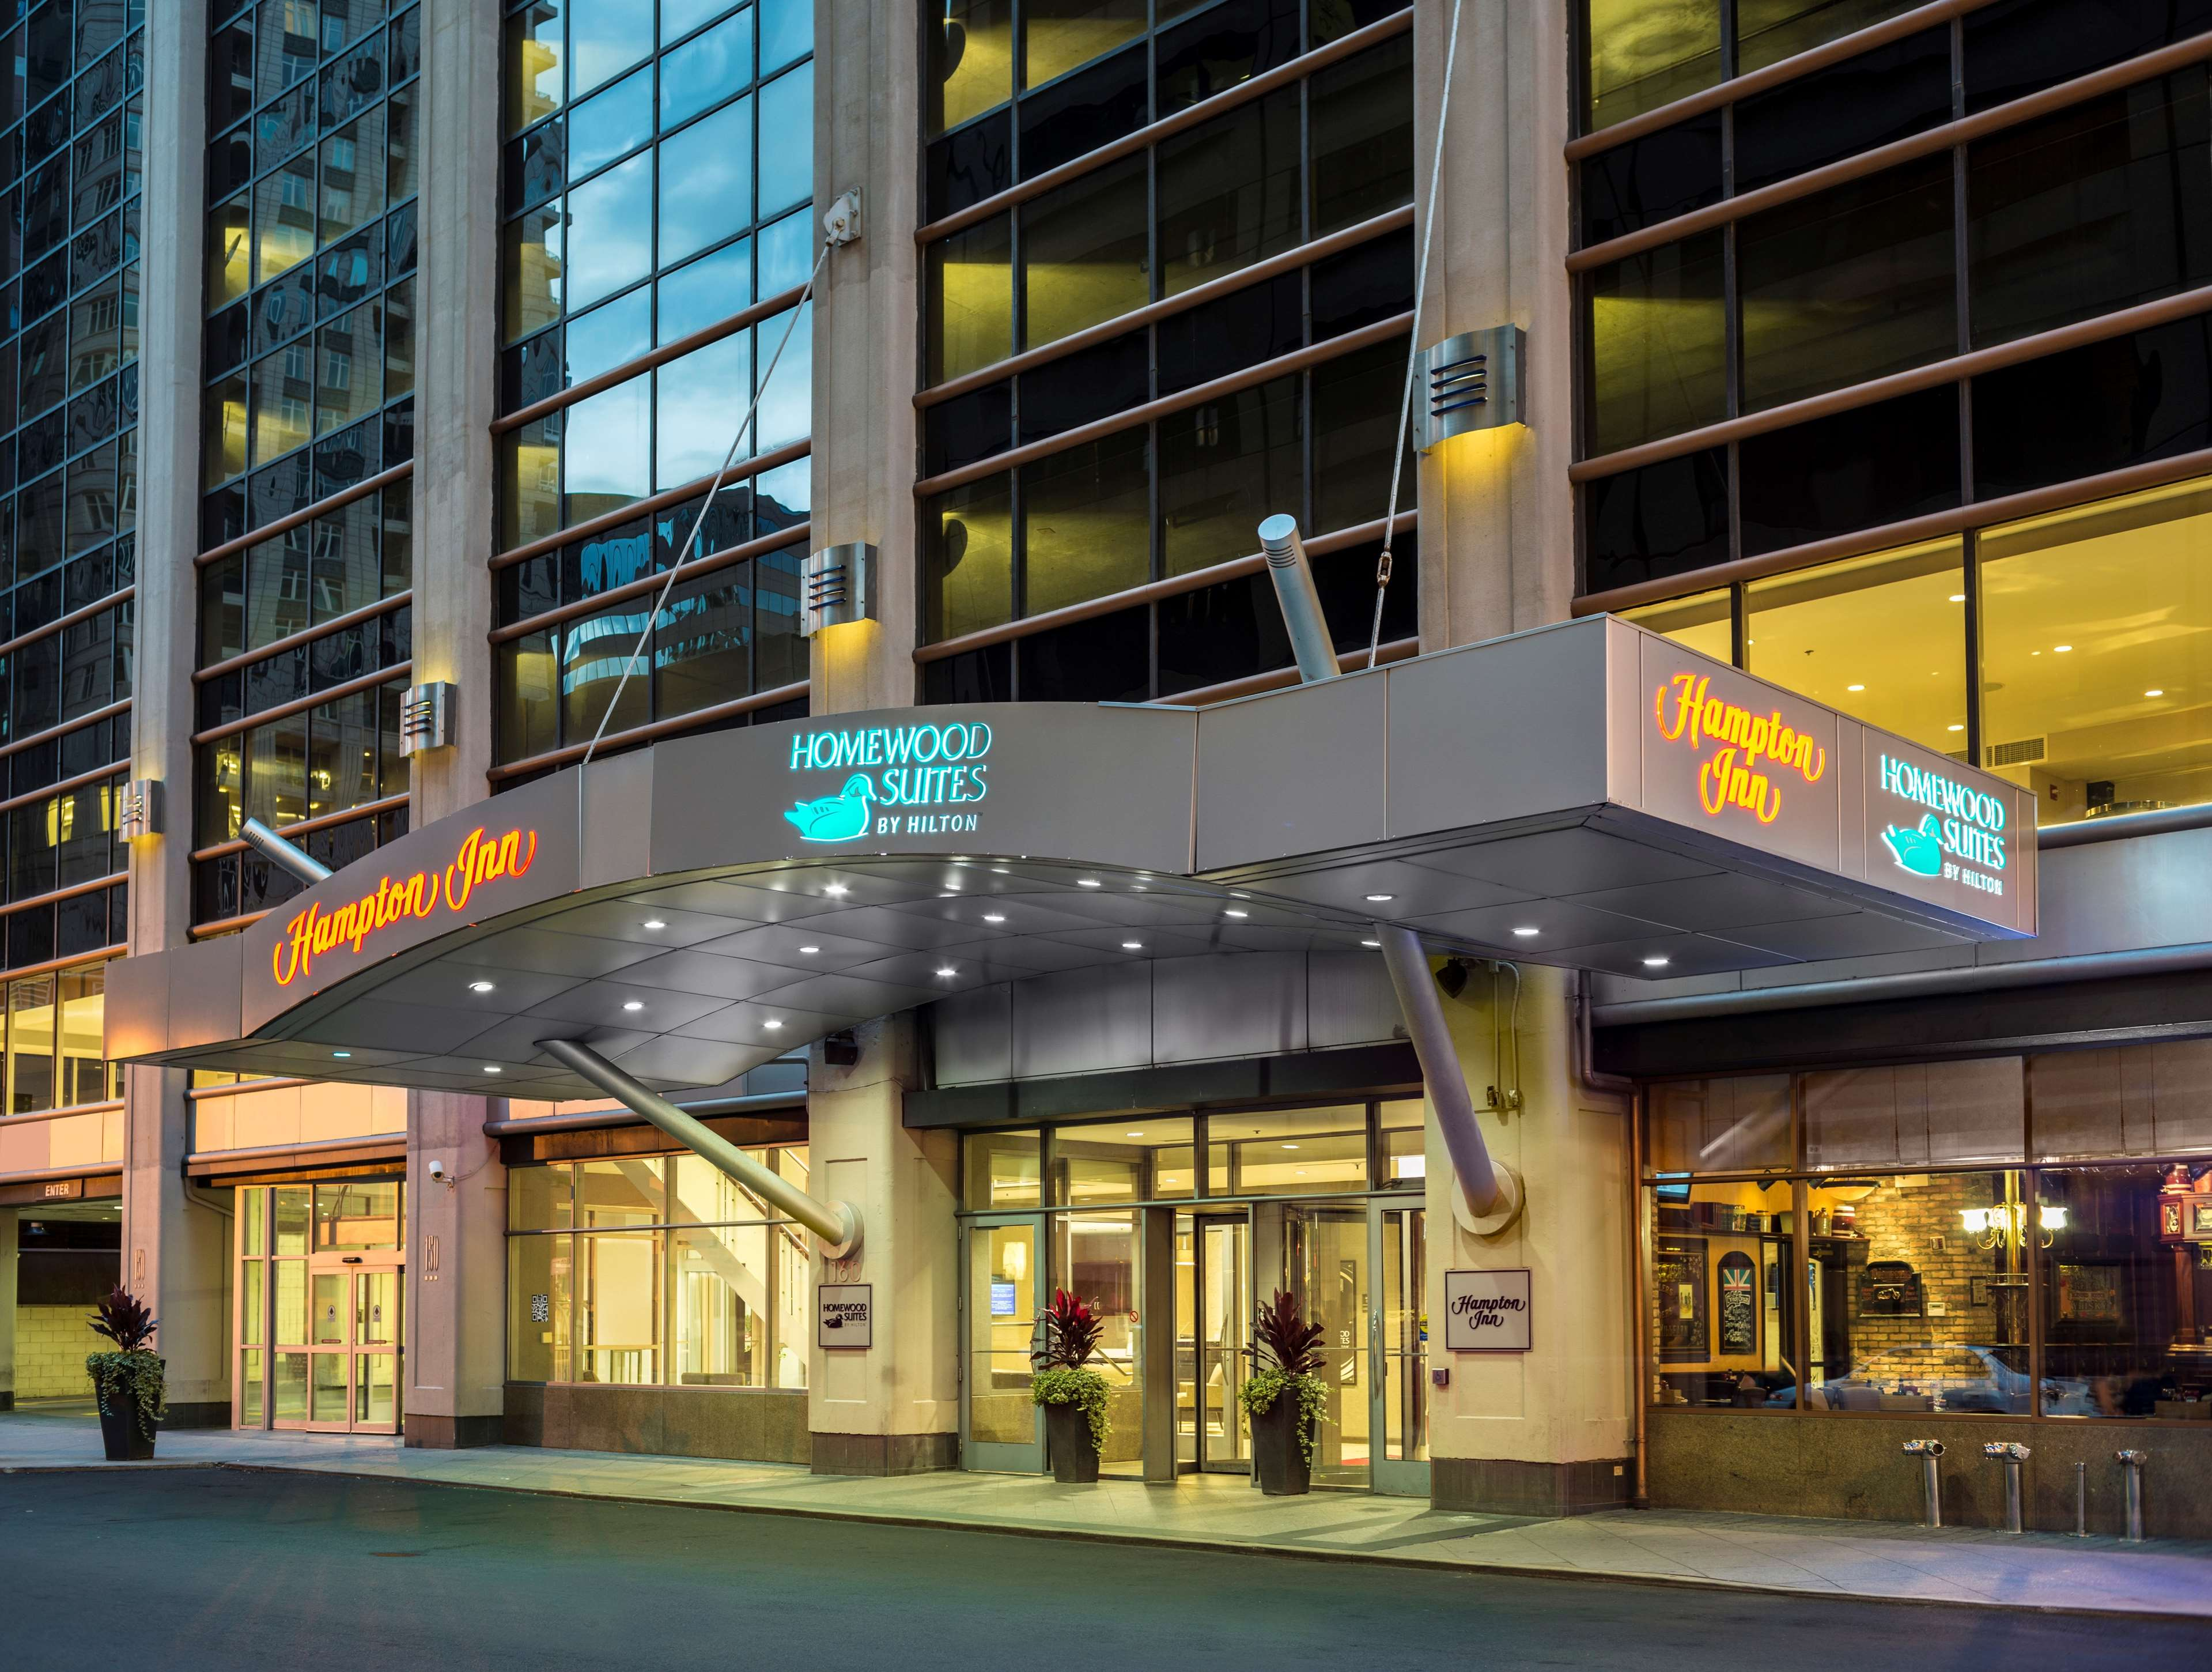 Homewood Suites by Hilton Chicago Downtown/Magnificent Mile